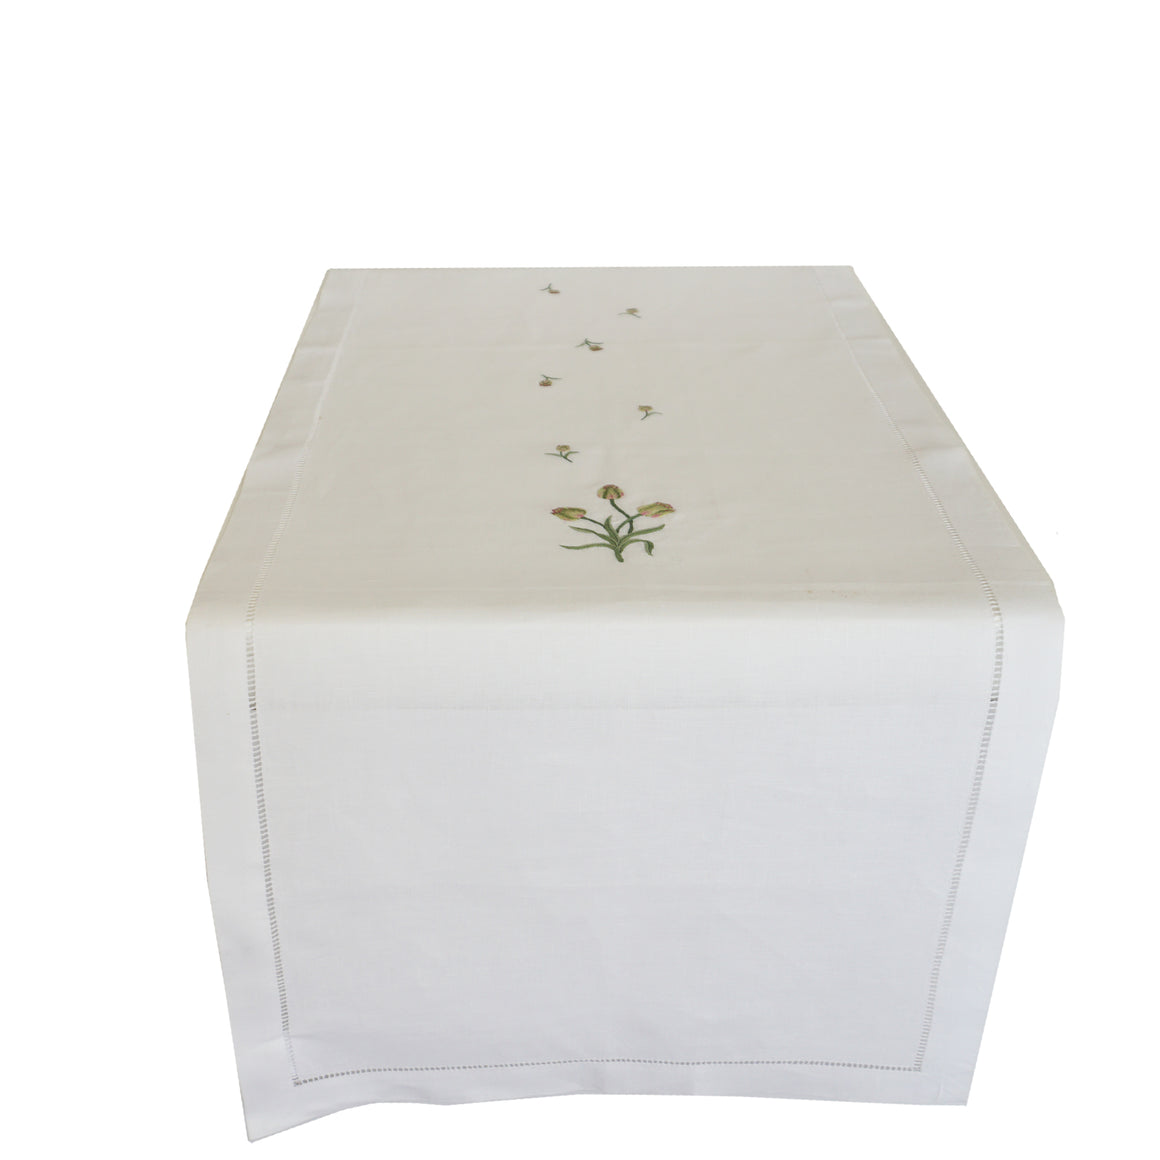 linen table runner - white with tulip embroidery